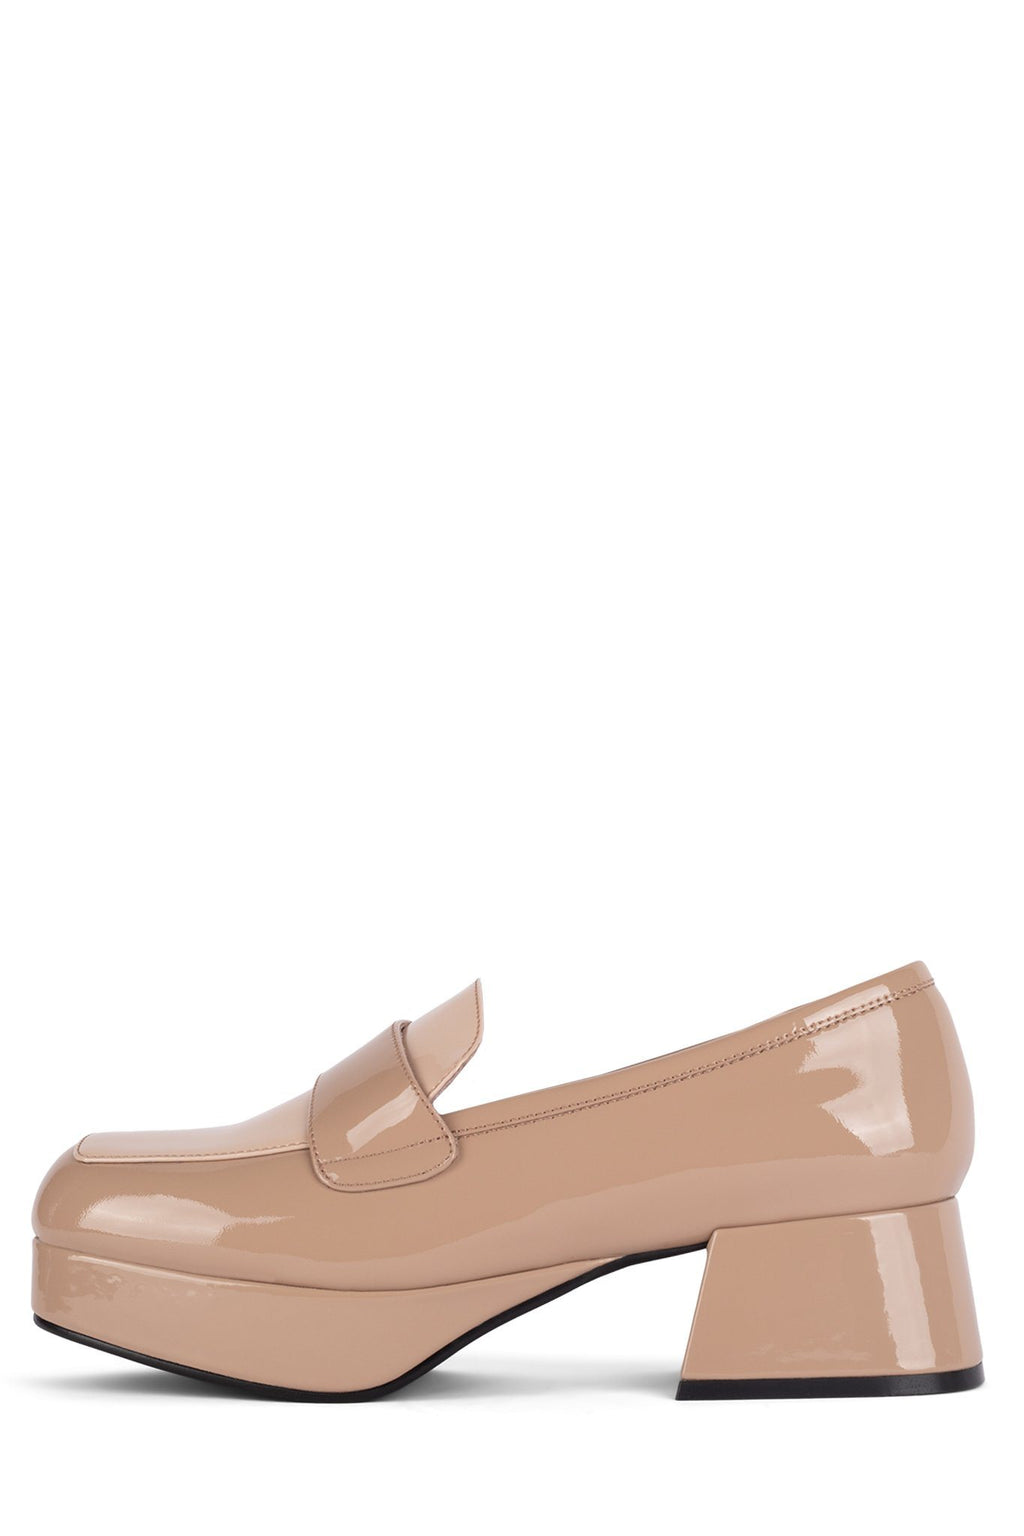 STUDENT-2N DV Nude Patent Combo 5